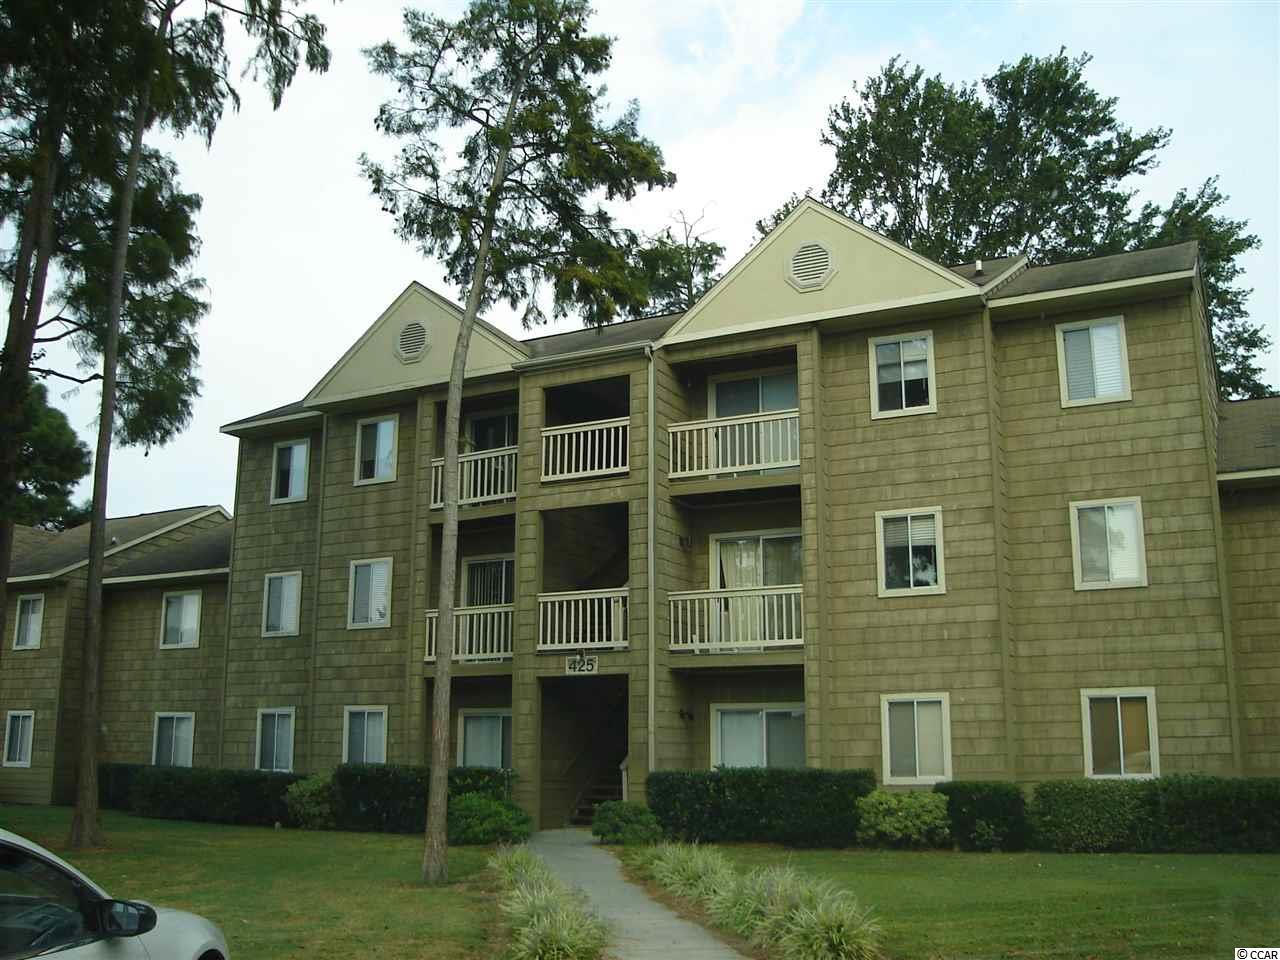 EXTREMELY NICE, TWO BEDROOM, TWO BATH OFFERING AT MYRTLE GREENS. NEW CARPET AND PAINT. FIRST FLOOR UNIT. NEW HVAC UNIT. A RARE OFFERING INDEED. CLOSE TO UNIVERSITY AND HOSPITAL. GOOD INVESTMENT OR SECOND HOME OPPORTUNITY. GREAT FOR A PRIMARY RESIDENCE. QUIET, WELL MAINTAINED PROPERTY.